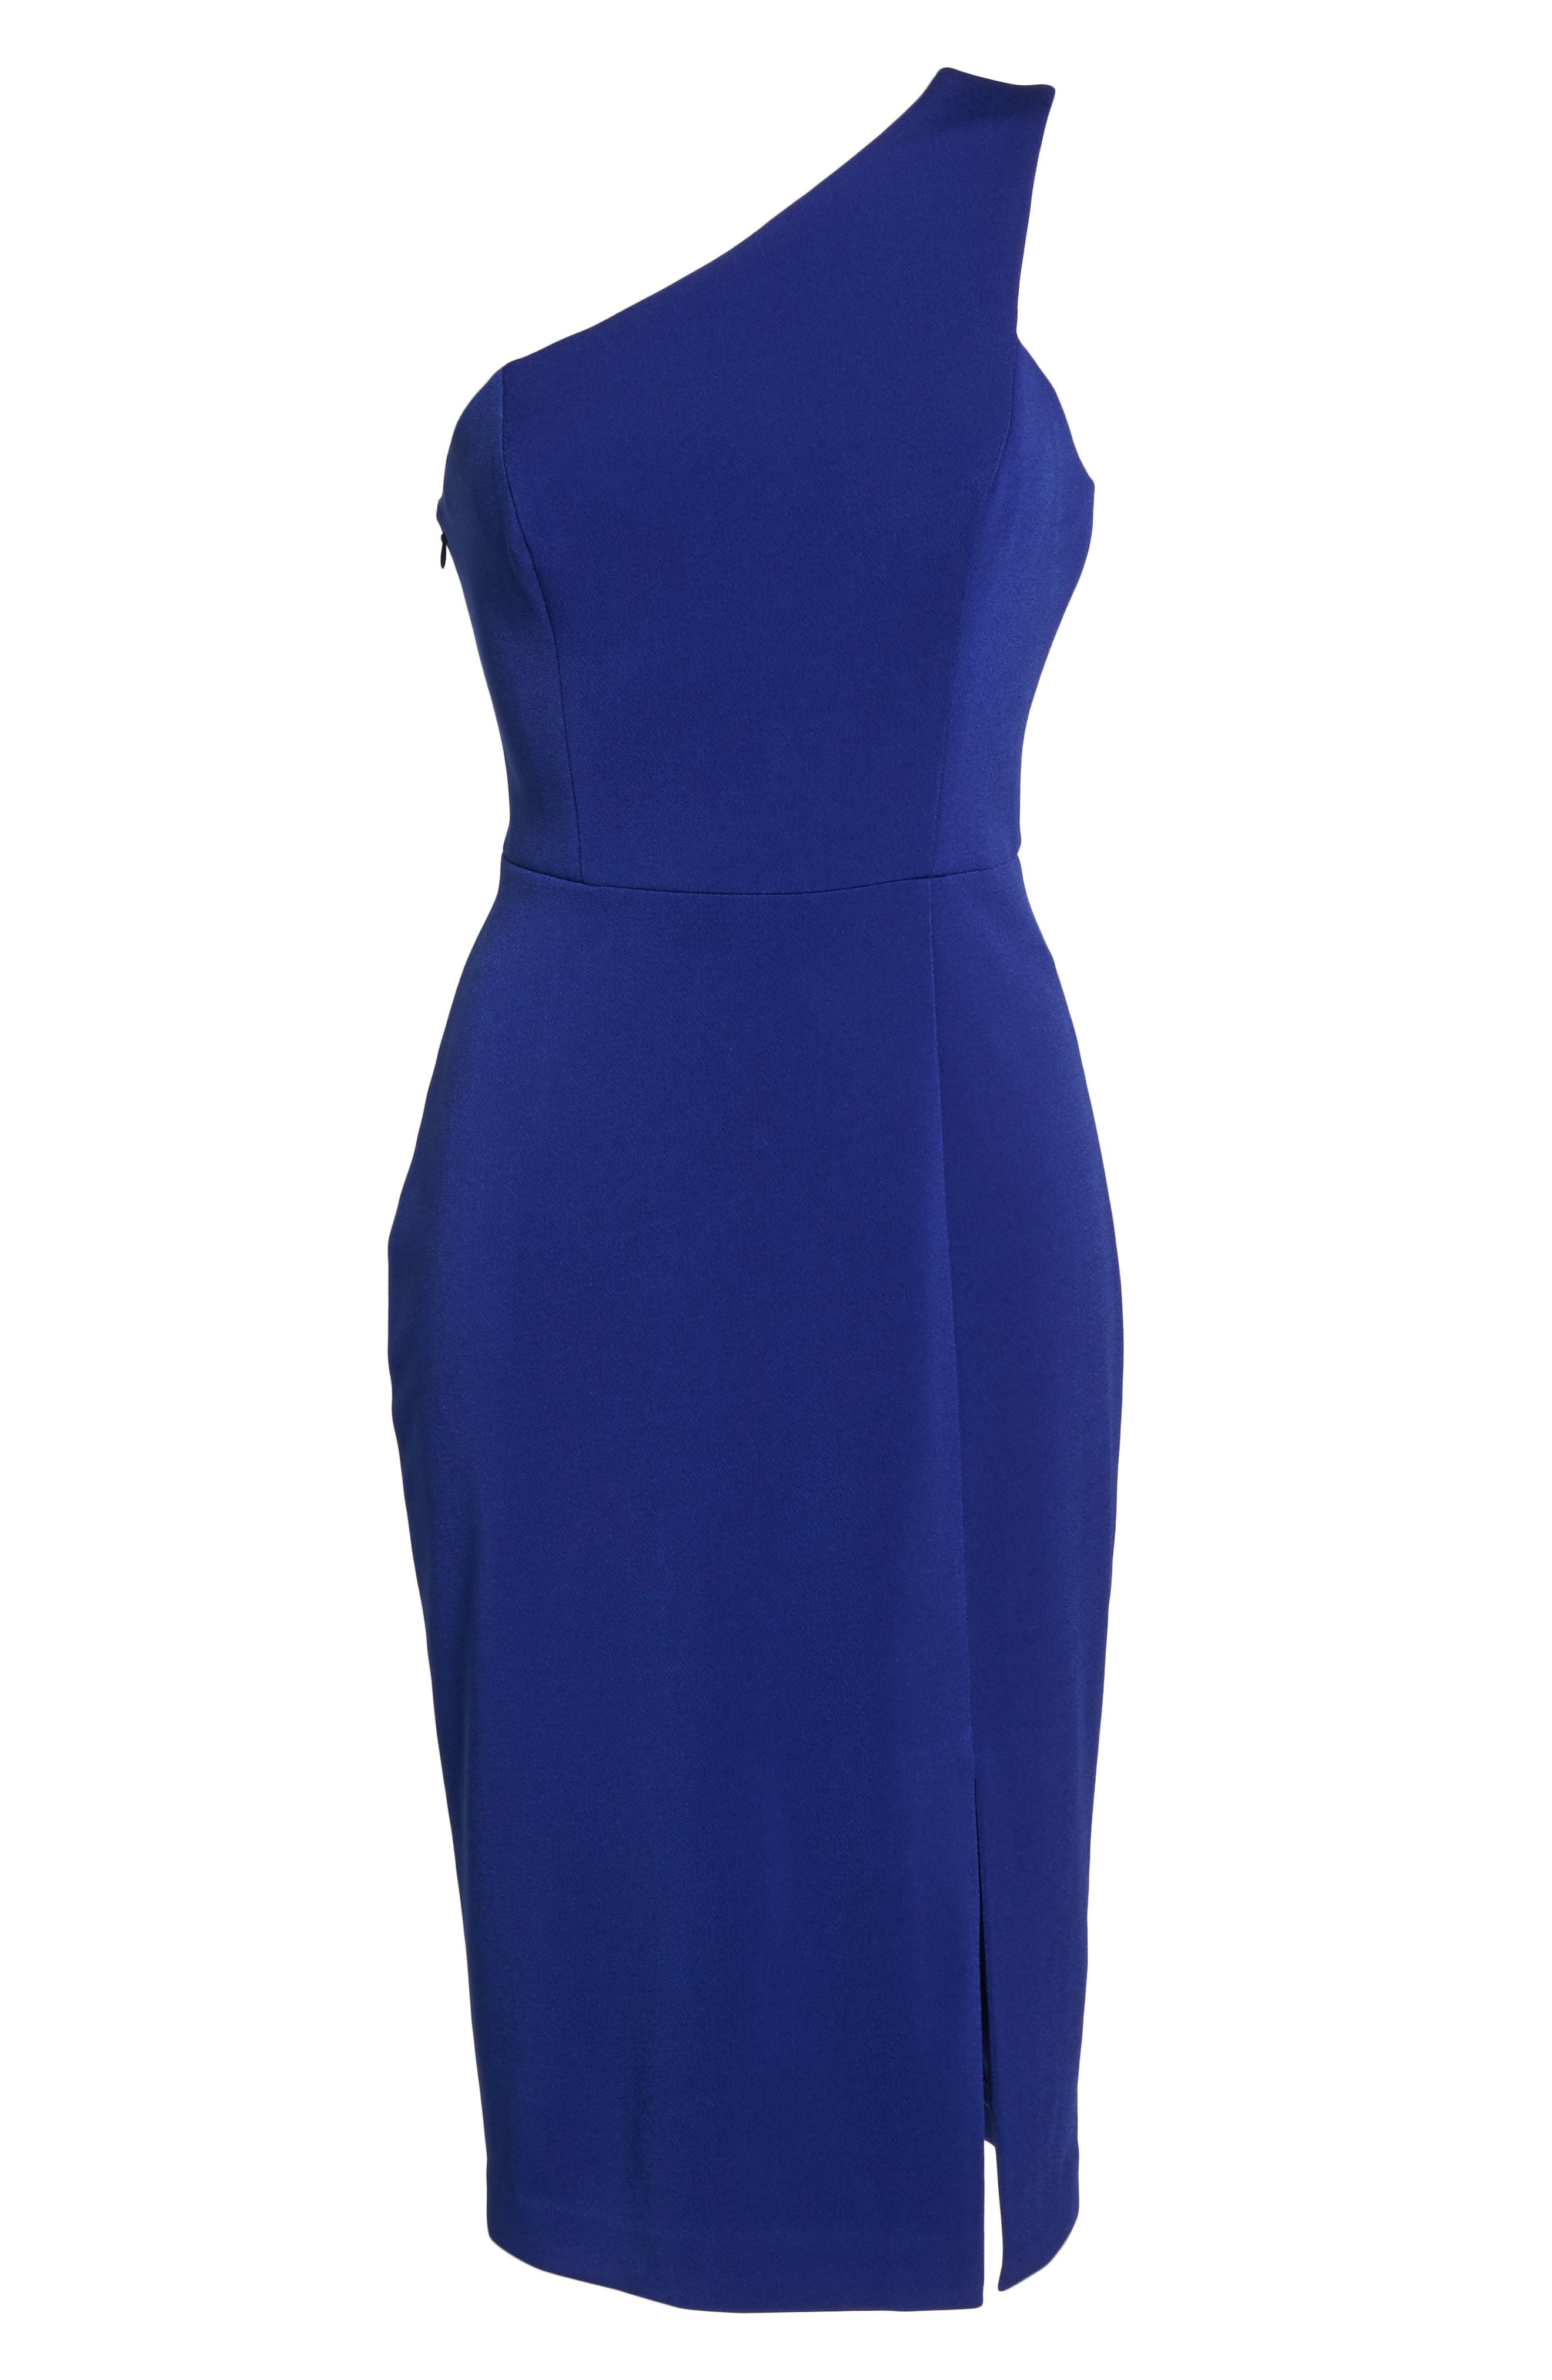 One-Shoulder Sheath Dress,                             Alternate thumbnail 6, color,                             430